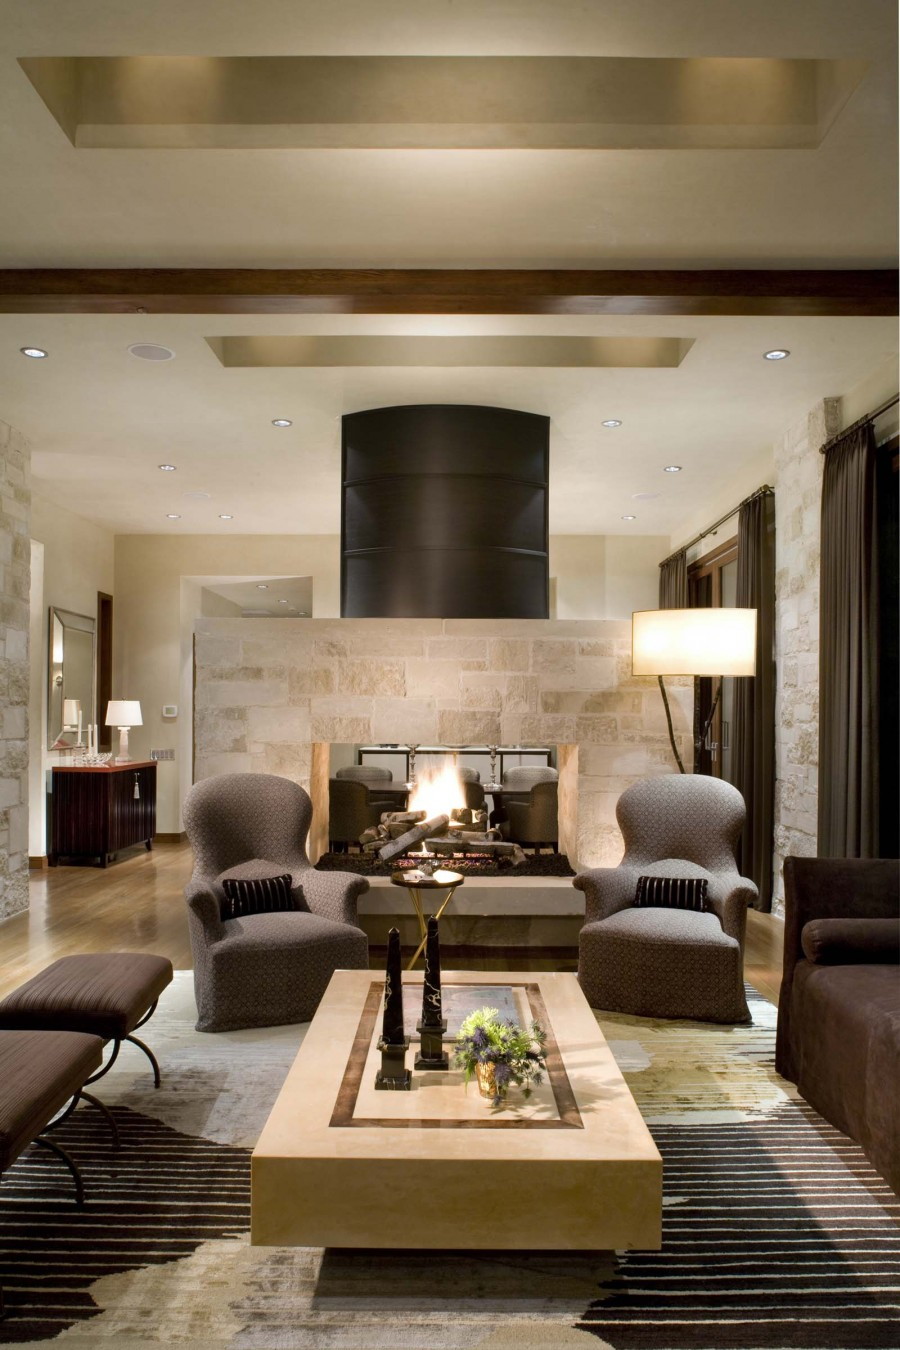 16 Fabulous Earth Tones Living Room Designs Decoholic: modern living room with fireplace